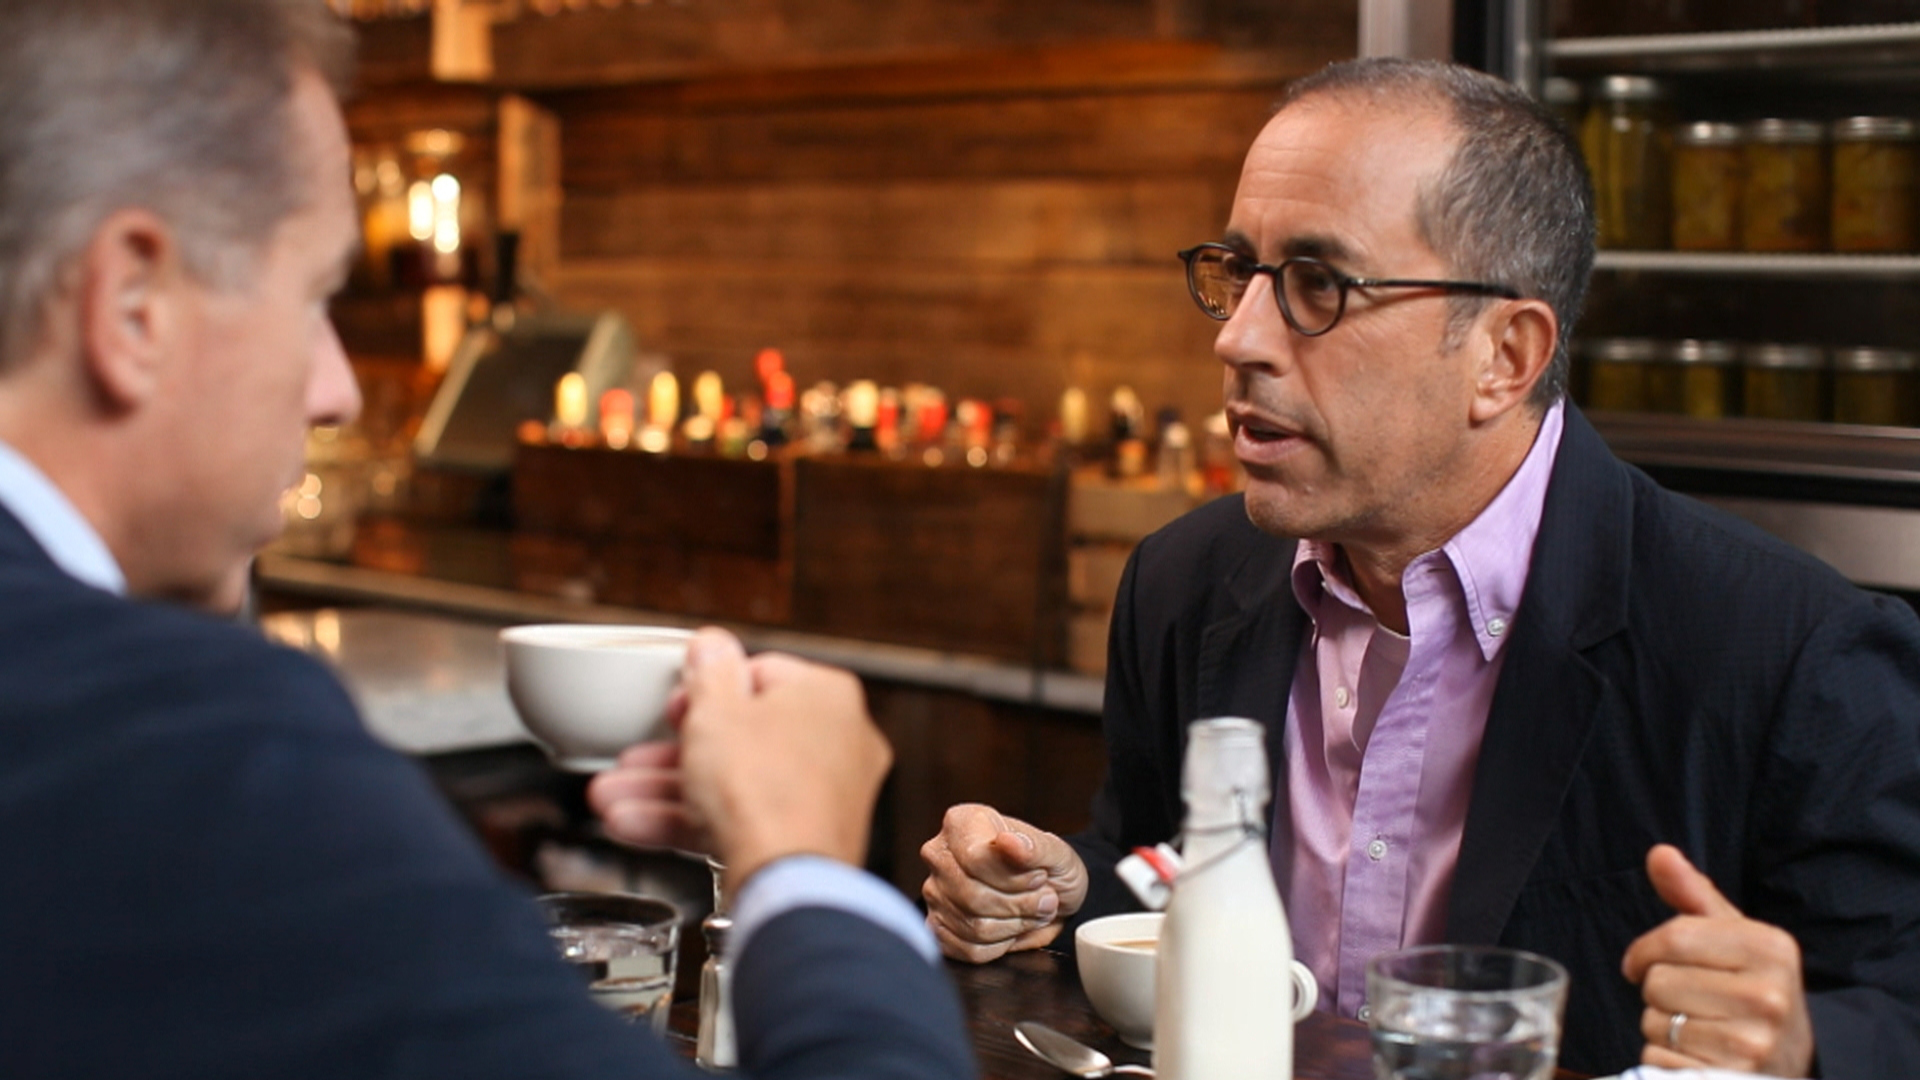 Jerry Seinfeld to Brian Williams: 'I Think I'm on the Spectrum'